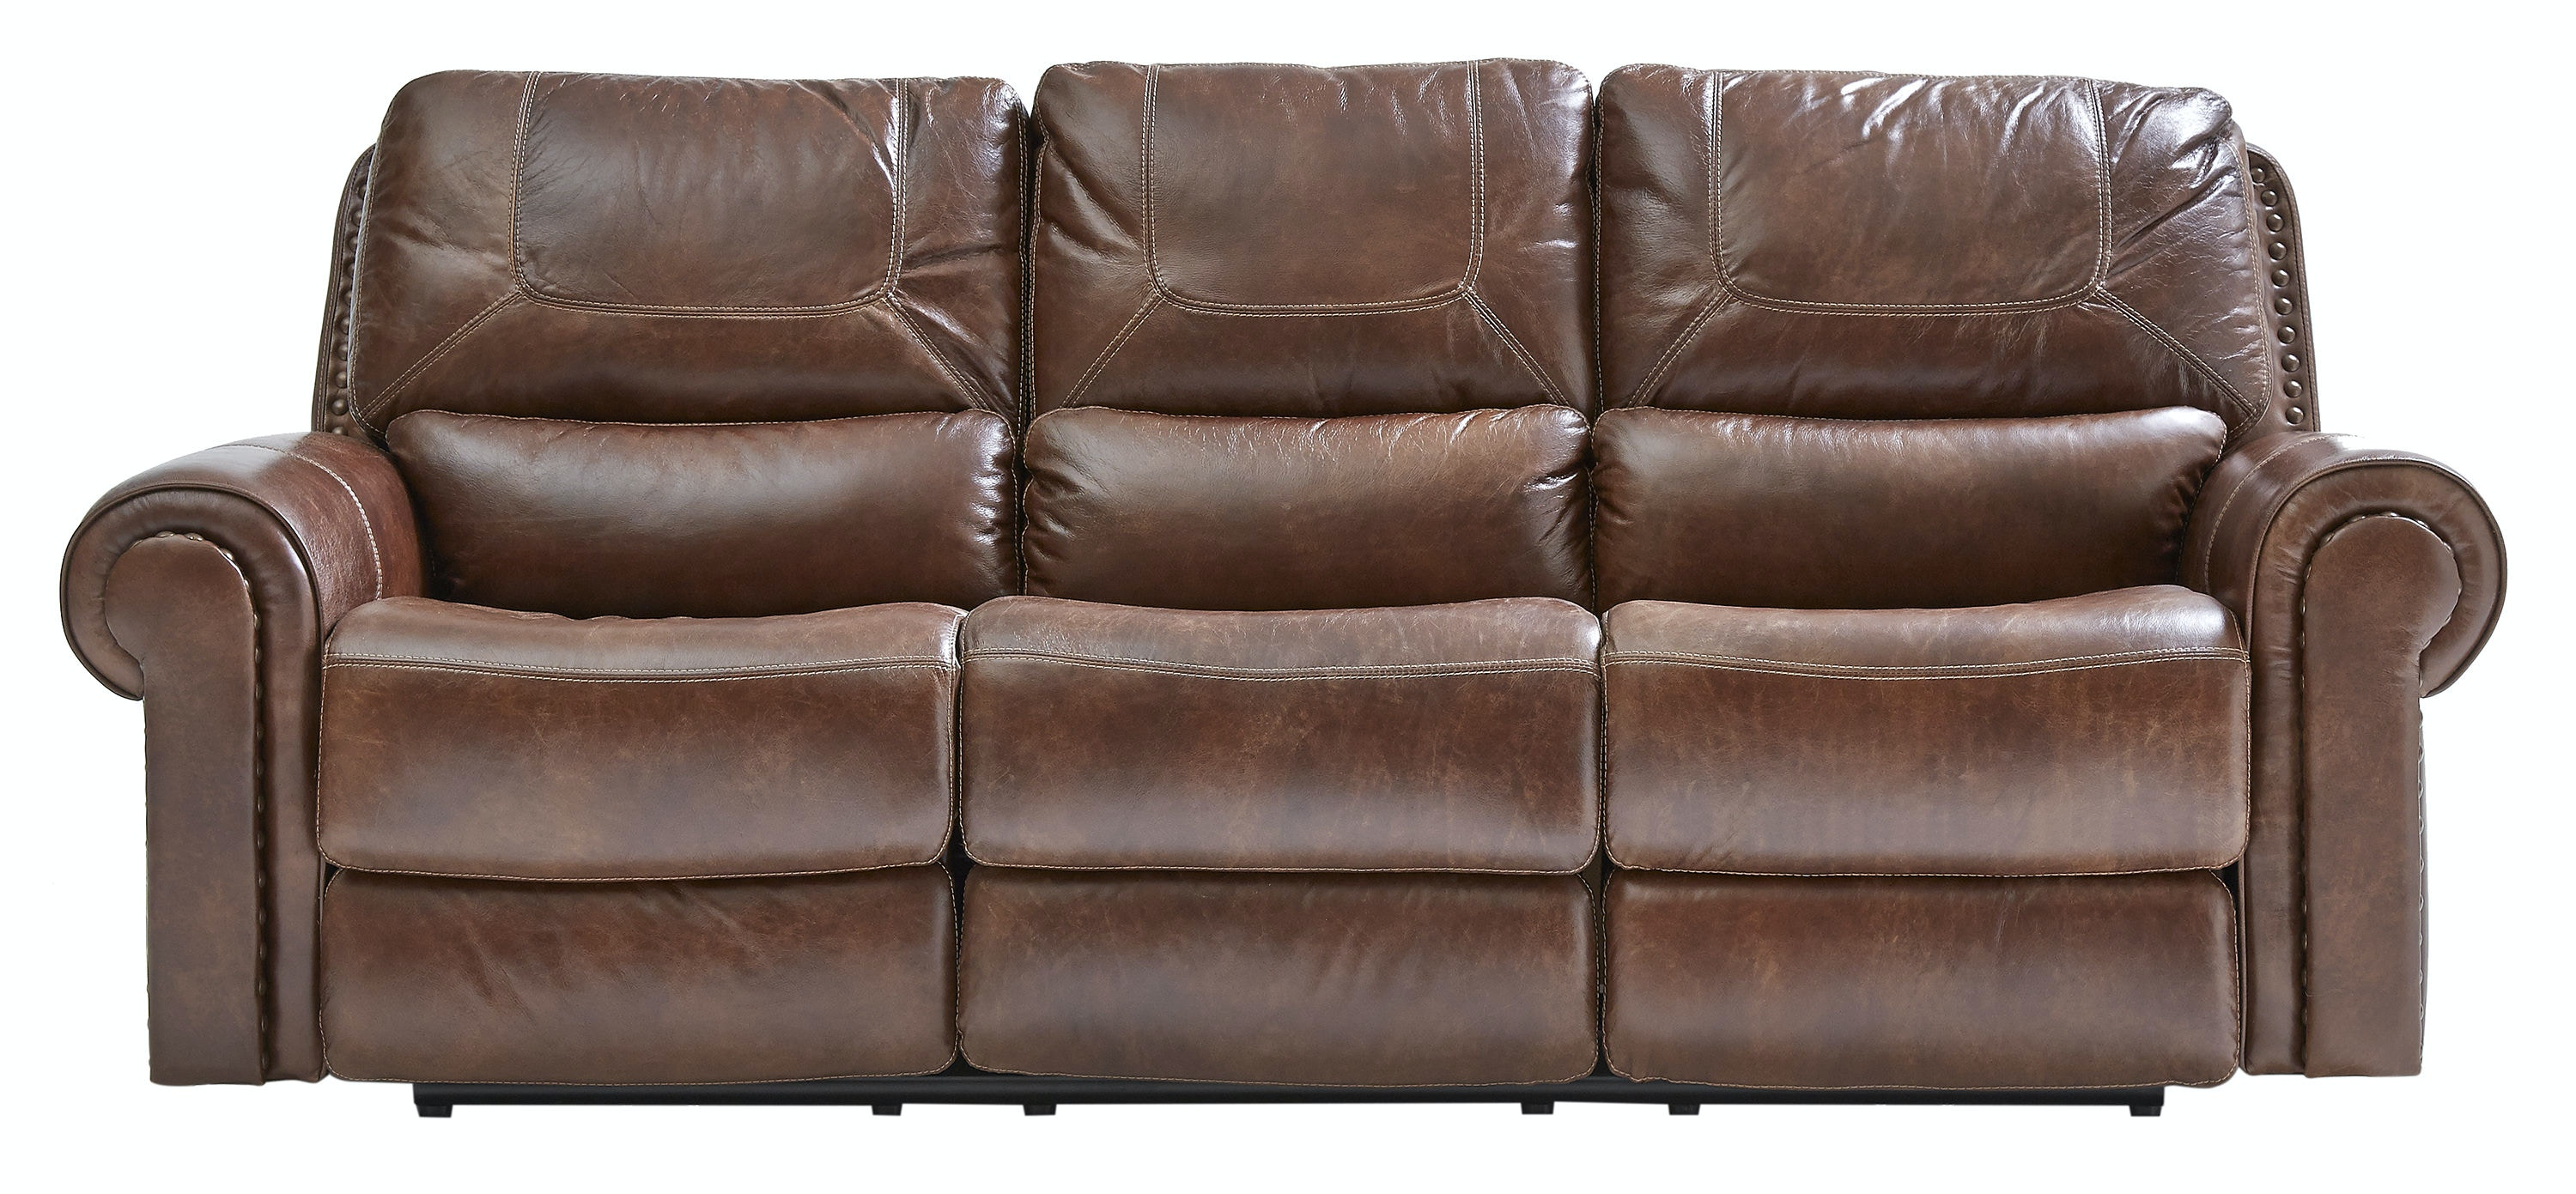 St. Charles Leather Power Sofa ST:439511